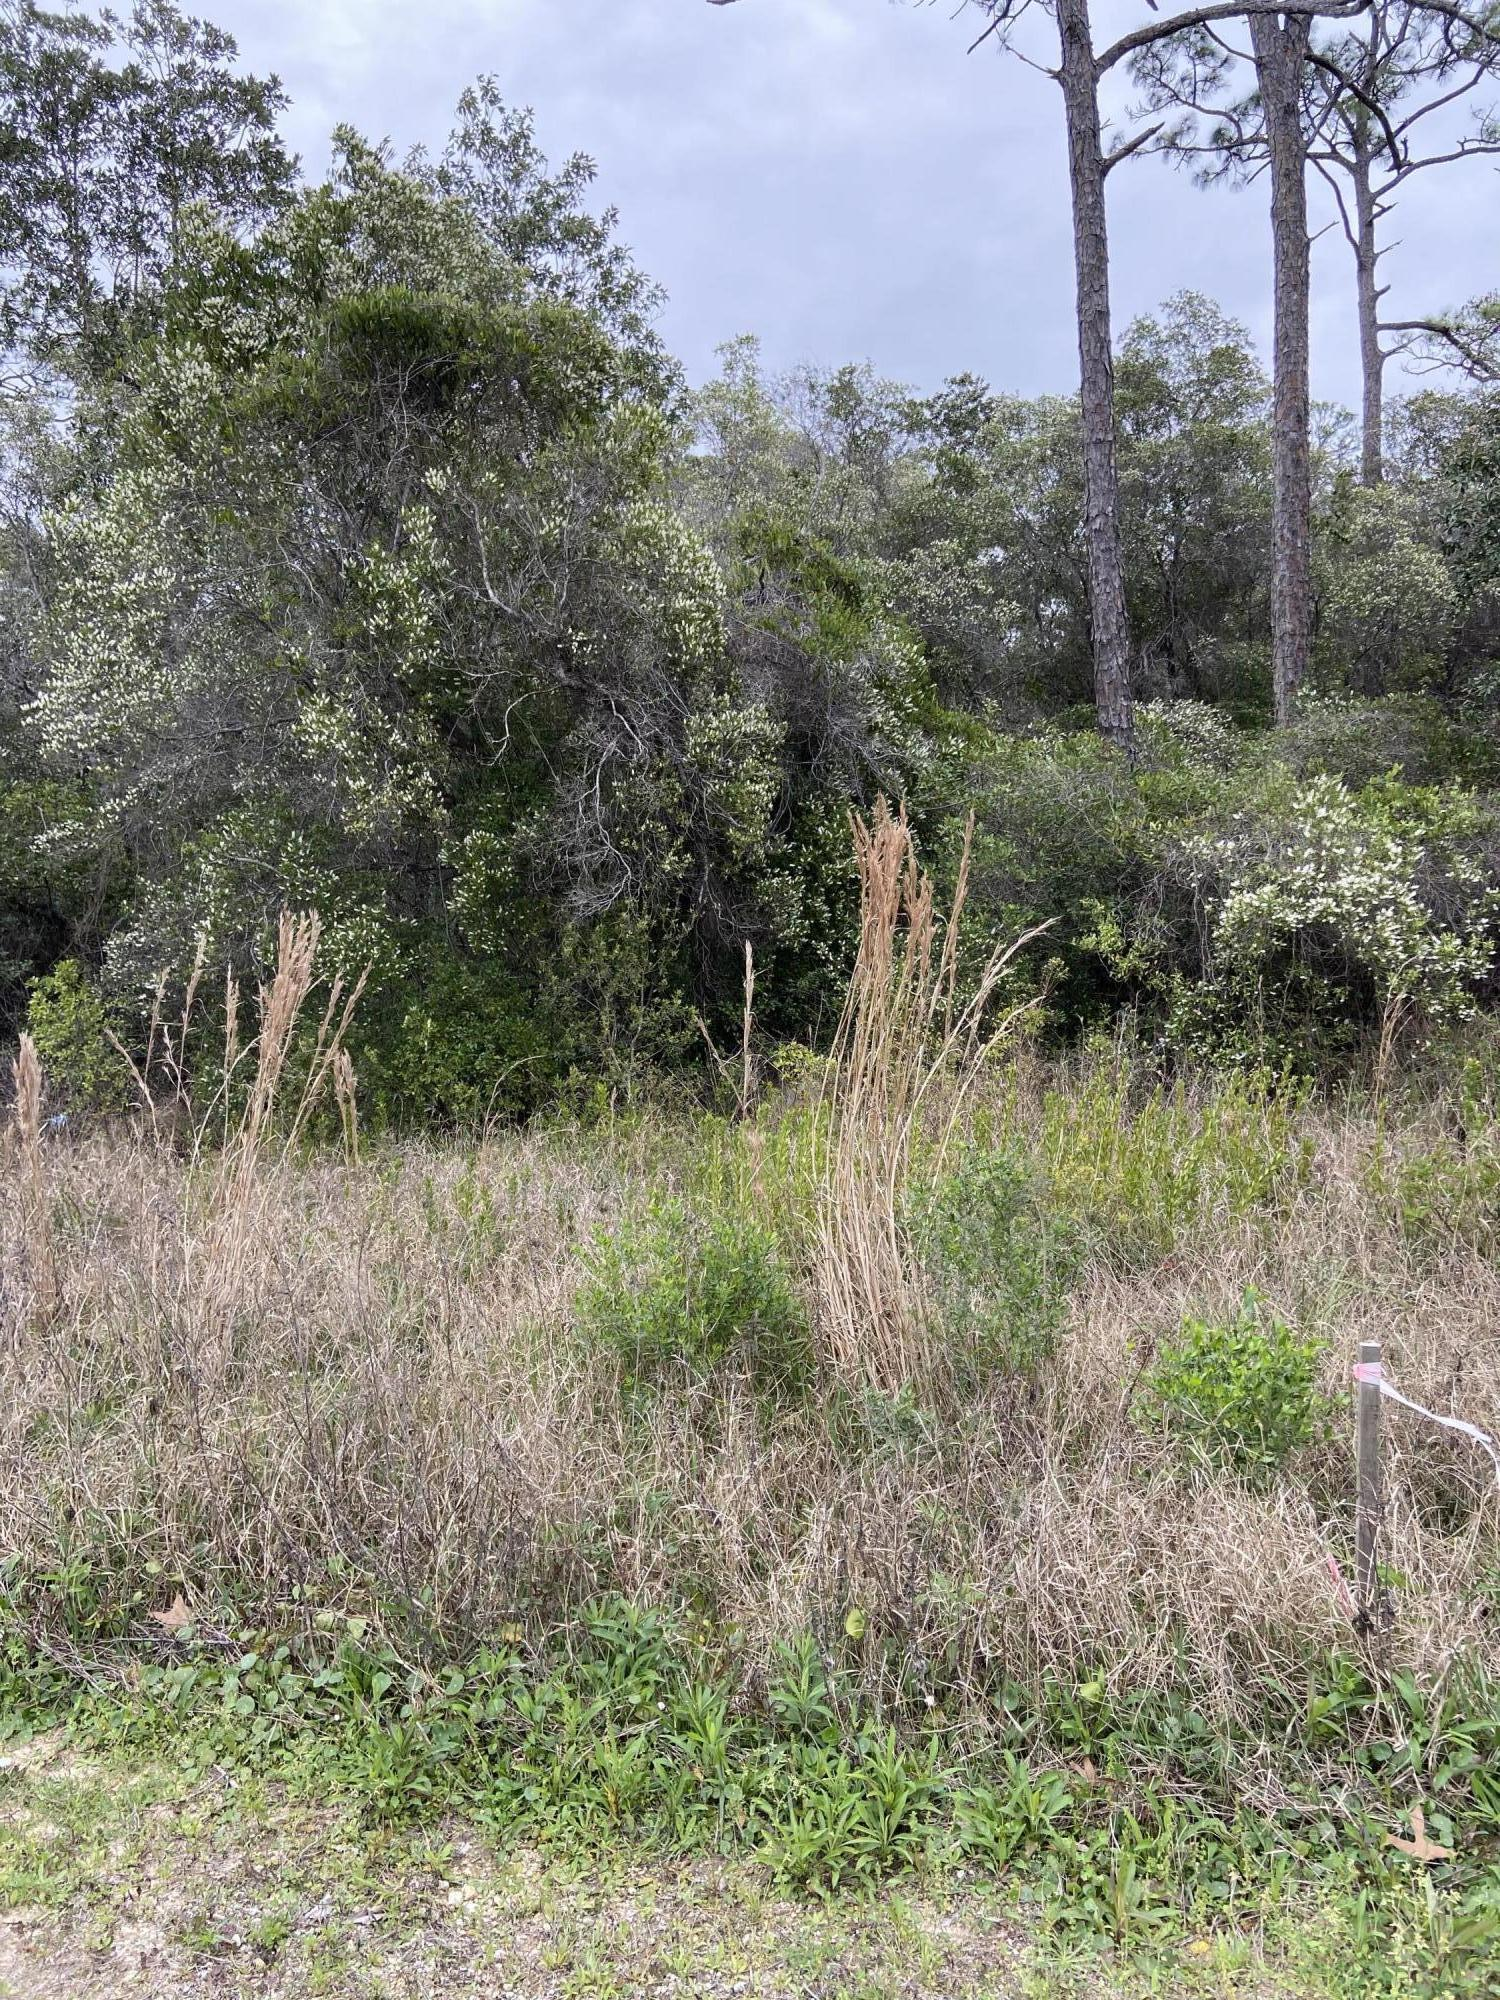 Located across from popular businesses, down the street from a new development and in the busy Grayton Beach area, this is one of the few lots available with frontage on Hwy 283.  Property is zoned VMU (Village Mixed Use) and backs to the Conservation area. Take a stroll along the running path and come see this lovely lot! **Buyer to verify all information.